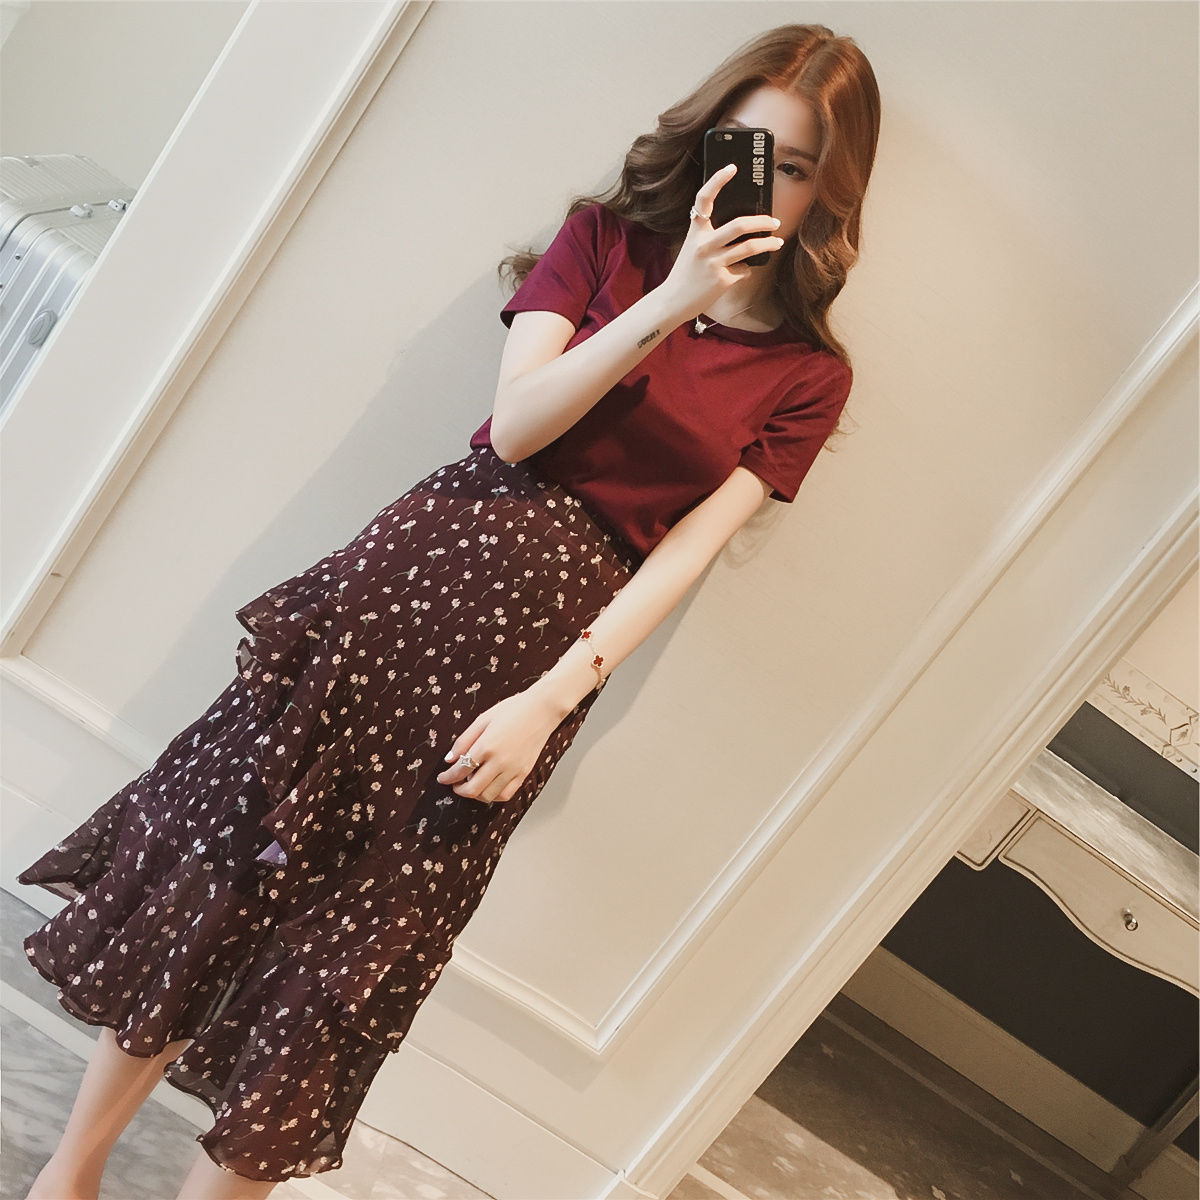 Summer Women's Sets Solid Color Floral Print Chiffon Two Pieces Set Round Neck Crop Tops And High Waist Skirt Casual Suits FY52